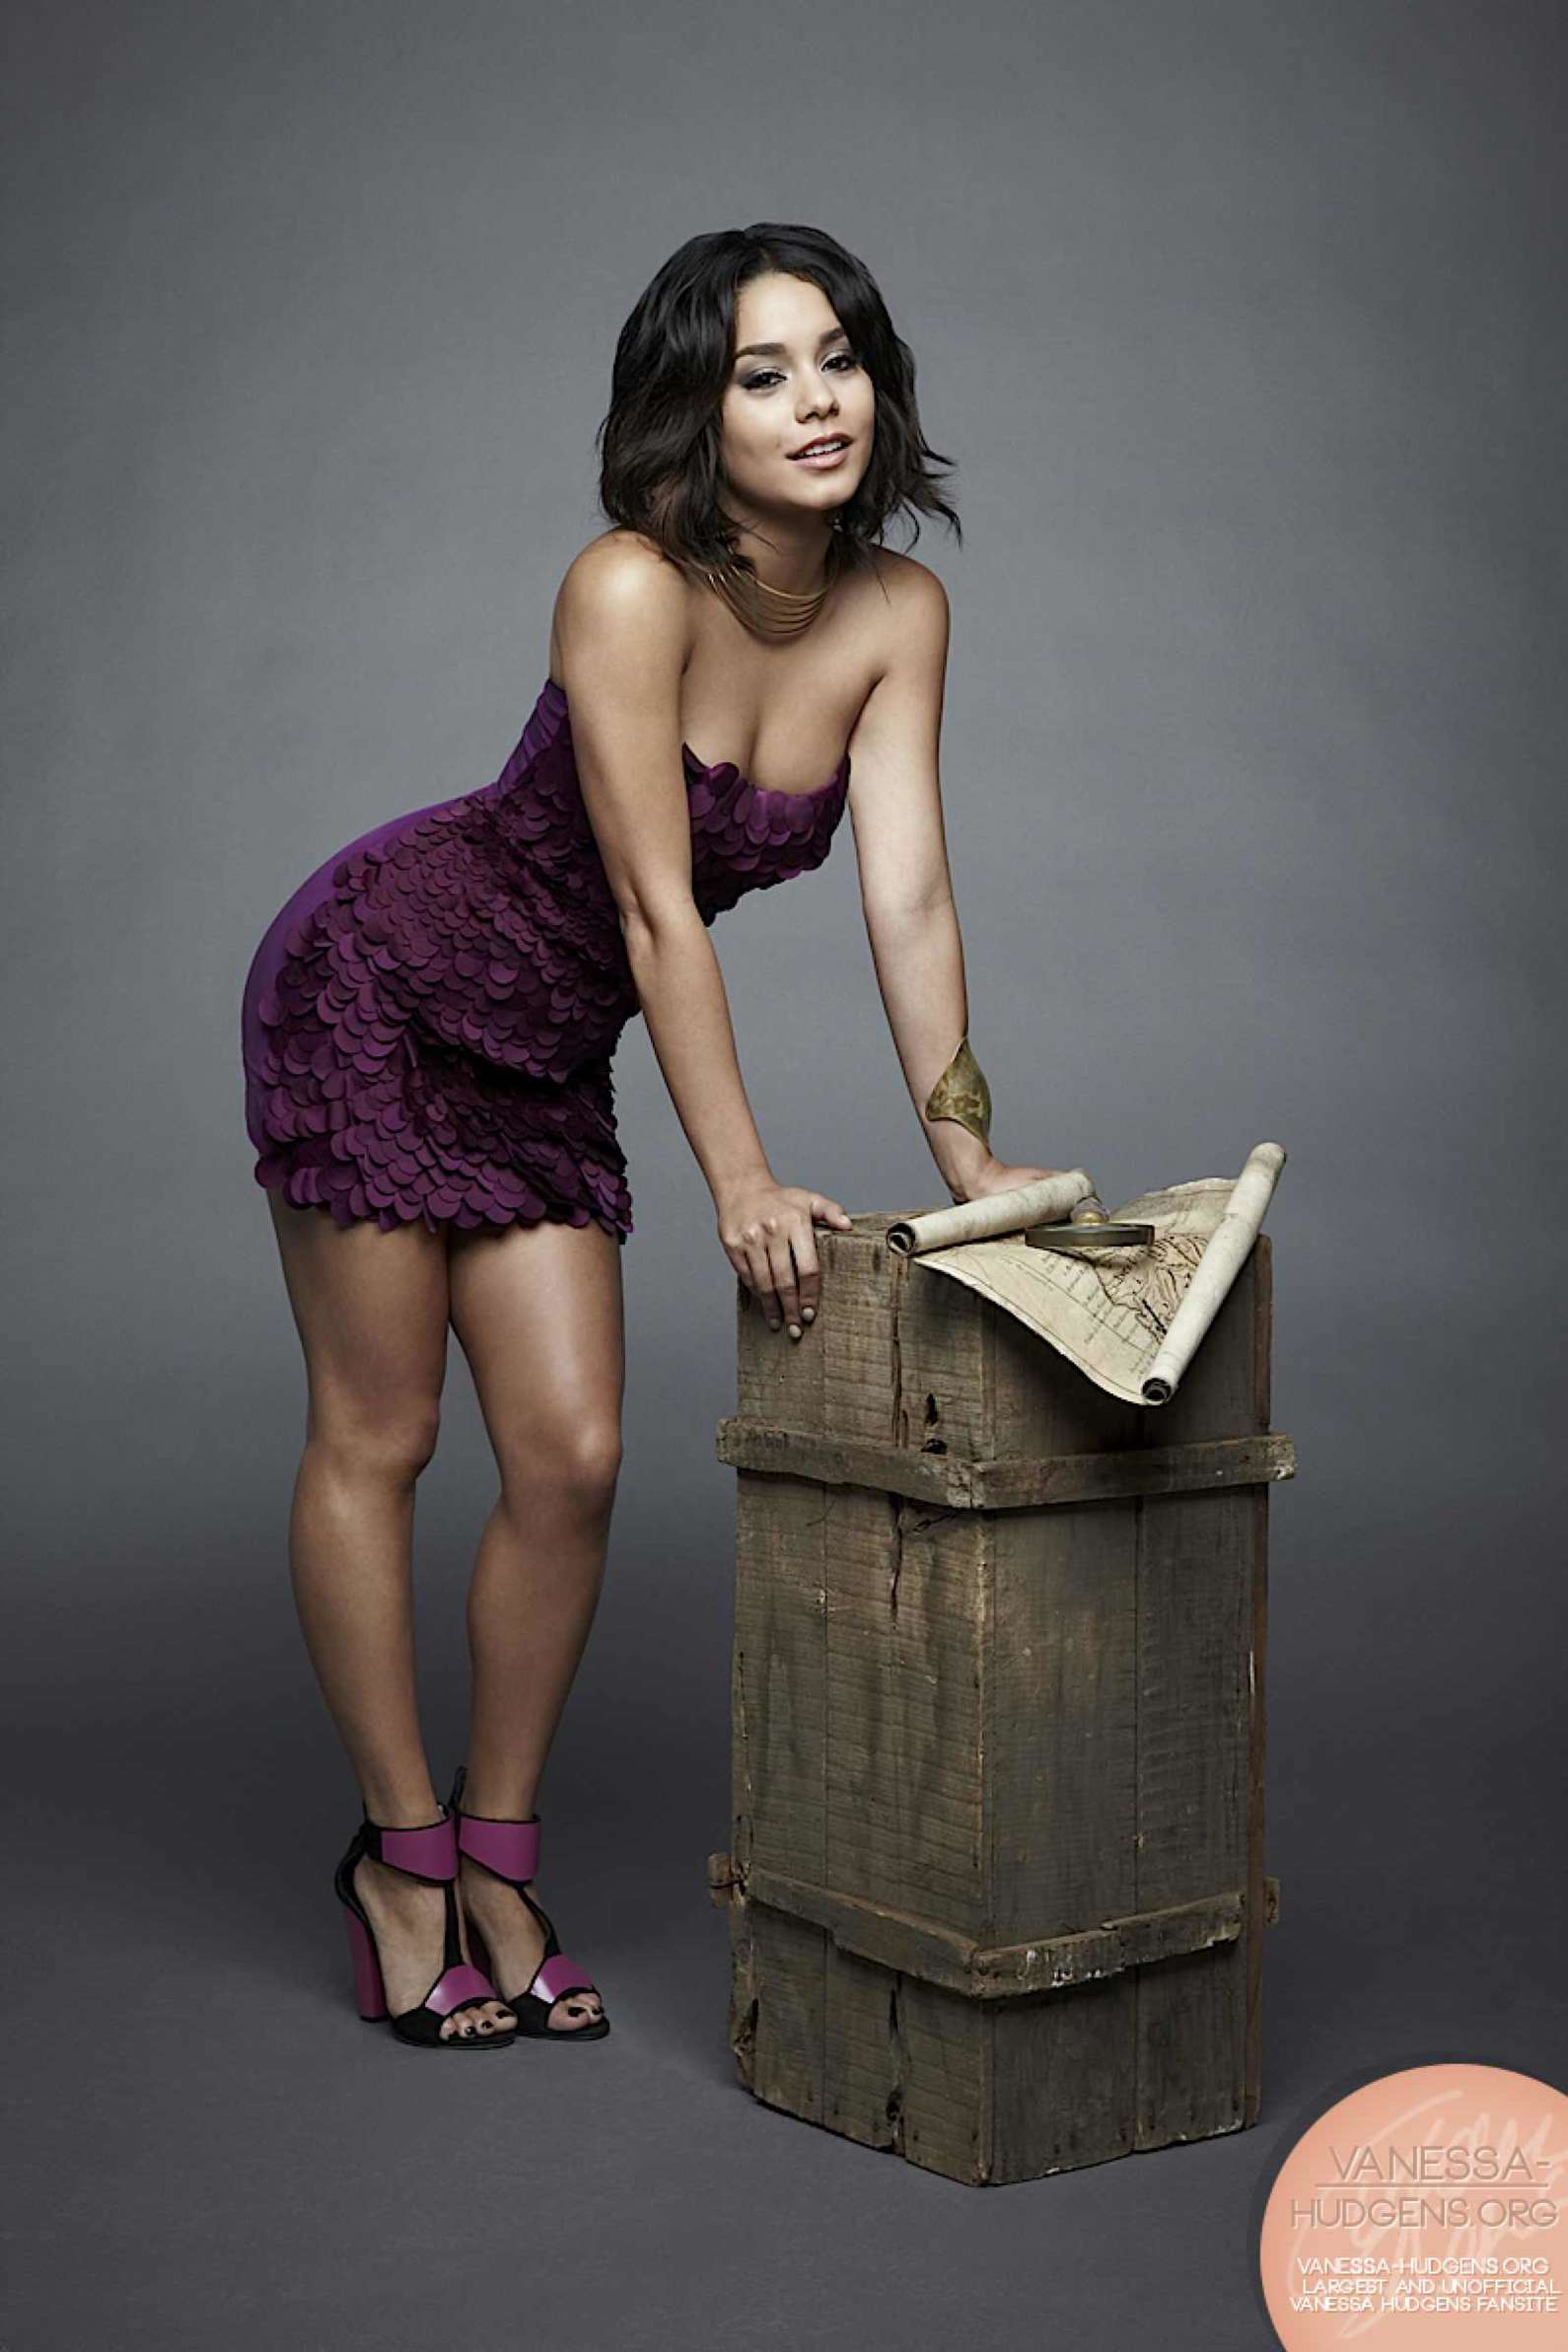 Topic Vanessa hudgens nude photoshoot can recommend